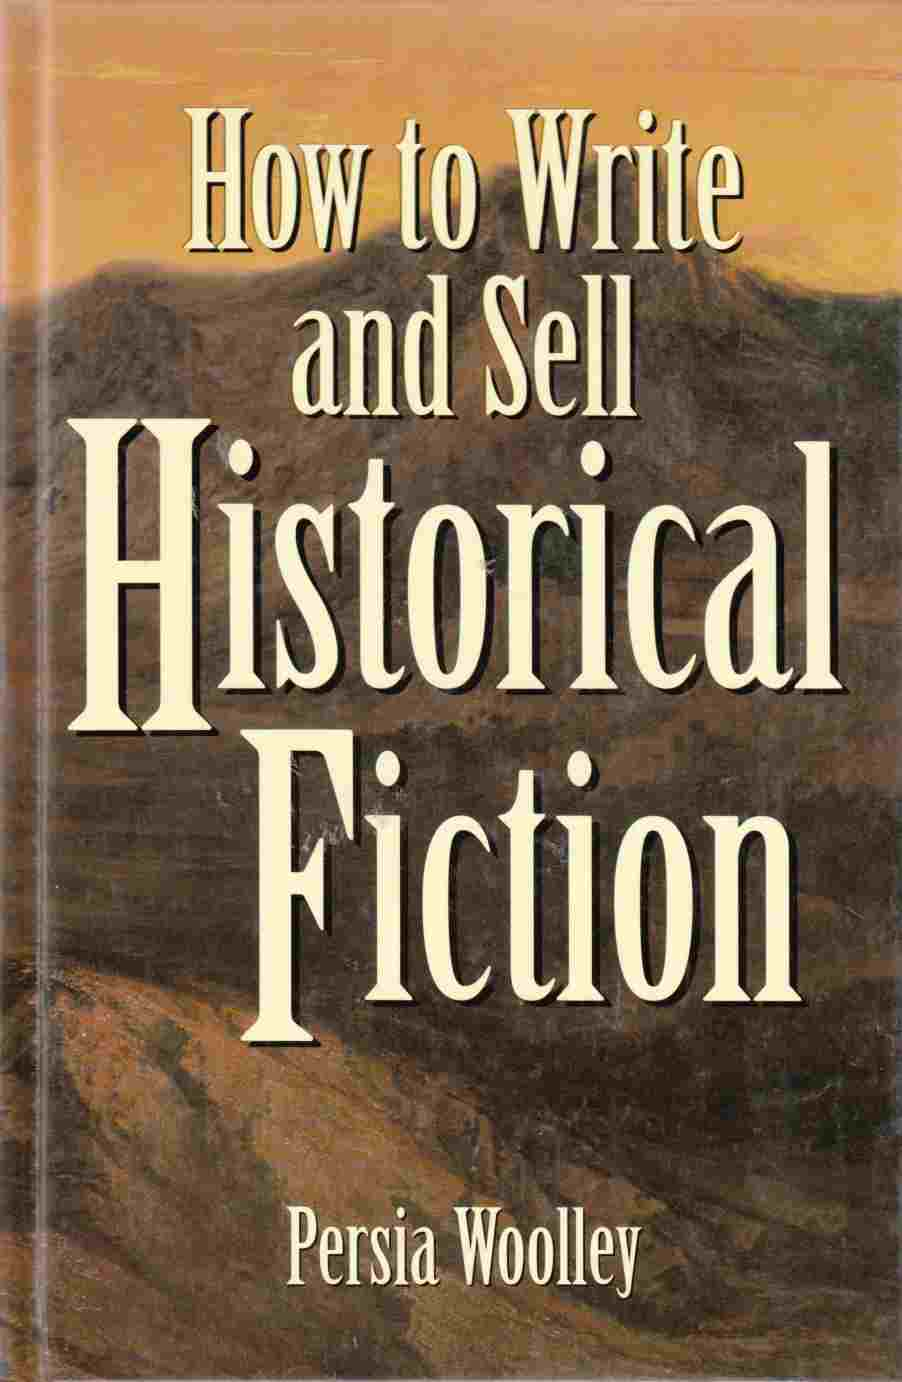 Image for How to Write and Sell Historical Fiction